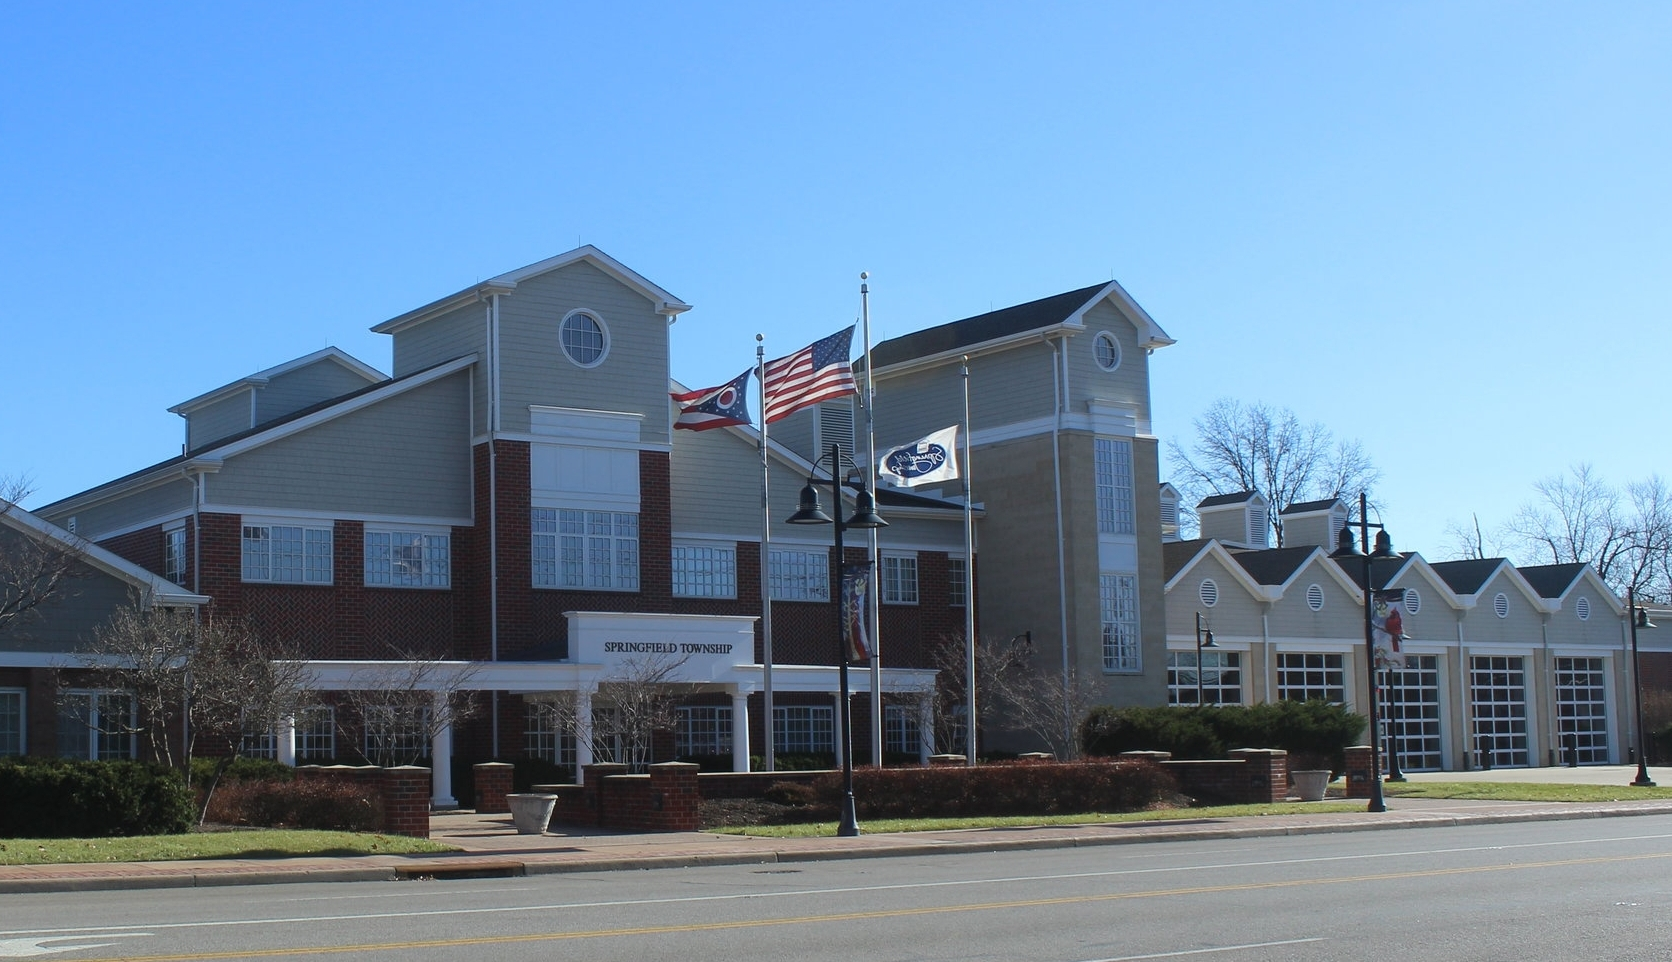 Springfield Township Administration Office